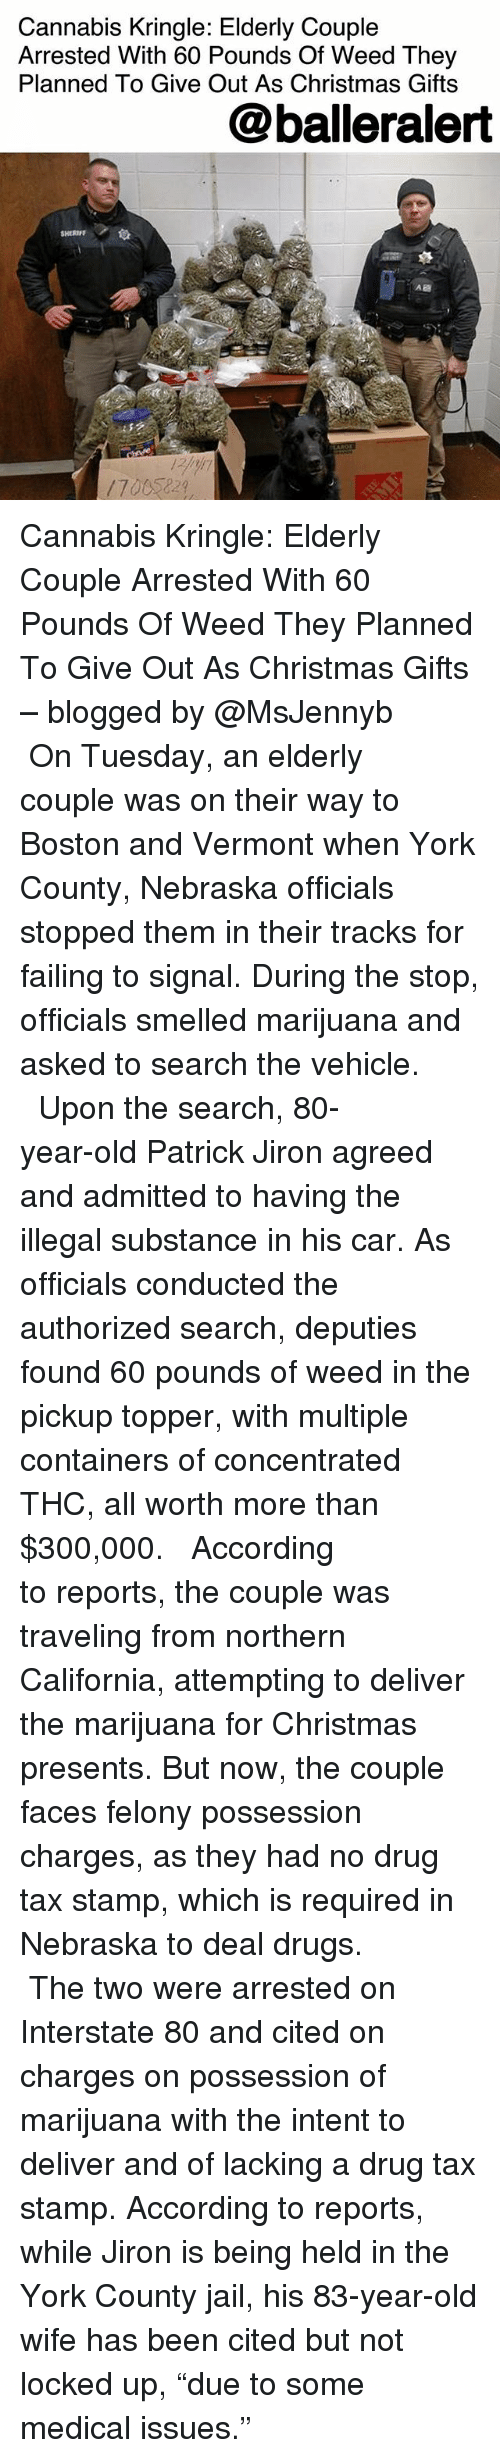 """Vermont: Cannabis Kringle: Elderly Couple  Arrested With 60 Pounds Of Weed They  Planned To Give Out As Christmas Gifts  @balleralert  SHERIFF  17015229, Cannabis Kringle: Elderly Couple Arrested With 60 Pounds Of Weed They Planned To Give Out As Christmas Gifts – blogged by @MsJennyb ⠀⠀⠀⠀⠀⠀⠀ ⠀⠀⠀⠀⠀⠀⠀ On Tuesday, an elderly couple was on their way to Boston and Vermont when York County, Nebraska officials stopped them in their tracks for failing to signal. During the stop, officials smelled marijuana and asked to search the vehicle. ⠀⠀⠀⠀⠀⠀⠀ ⠀⠀⠀⠀⠀⠀⠀ Upon the search, 80-year-old Patrick Jiron agreed and admitted to having the illegal substance in his car. As officials conducted the authorized search, deputies found 60 pounds of weed in the pickup topper, with multiple containers of concentrated THC, all worth more than $300,000. ⠀⠀⠀⠀⠀⠀⠀ ⠀⠀⠀⠀⠀⠀⠀ According to reports, the couple was traveling from northern California, attempting to deliver the marijuana for Christmas presents. But now, the couple faces felony possession charges, as they had no drug tax stamp, which is required in Nebraska to deal drugs. ⠀⠀⠀⠀⠀⠀⠀ ⠀⠀⠀⠀⠀⠀⠀ The two were arrested on Interstate 80 and cited on charges on possession of marijuana with the intent to deliver and of lacking a drug tax stamp. According to reports, while Jiron is being held in the York County jail, his 83-year-old wife has been cited but not locked up, """"due to some medical issues."""""""